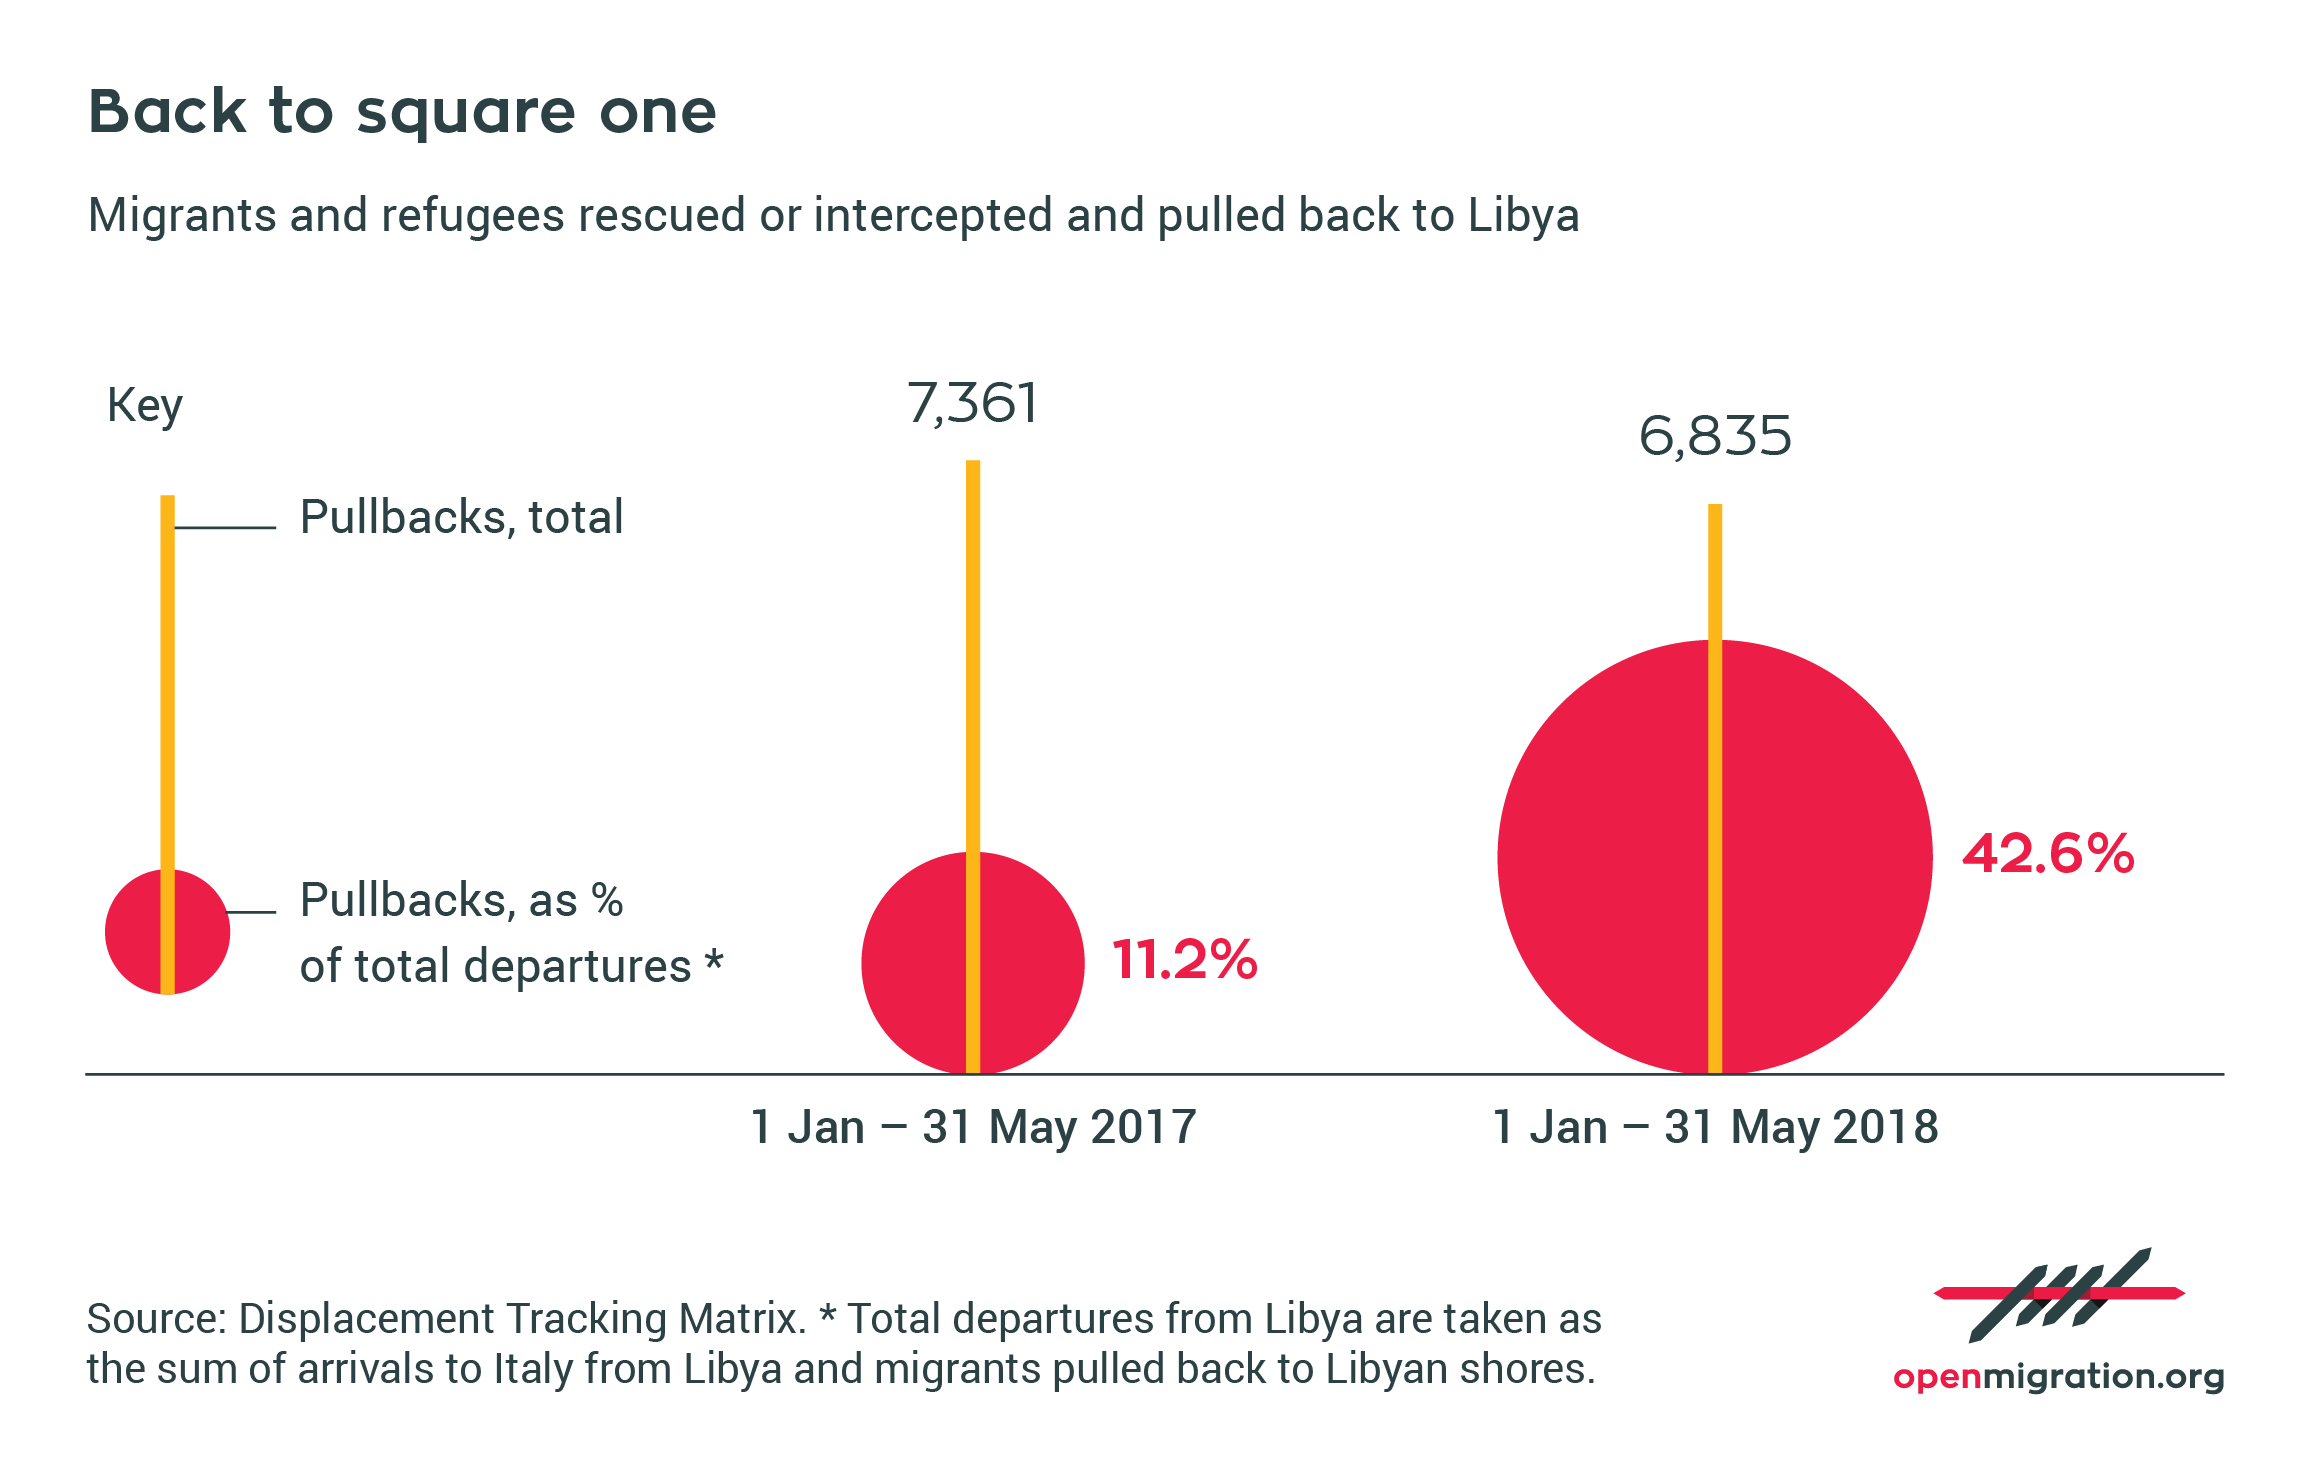 Migrants and refugees rescued or intercepted and pulled back to Libya